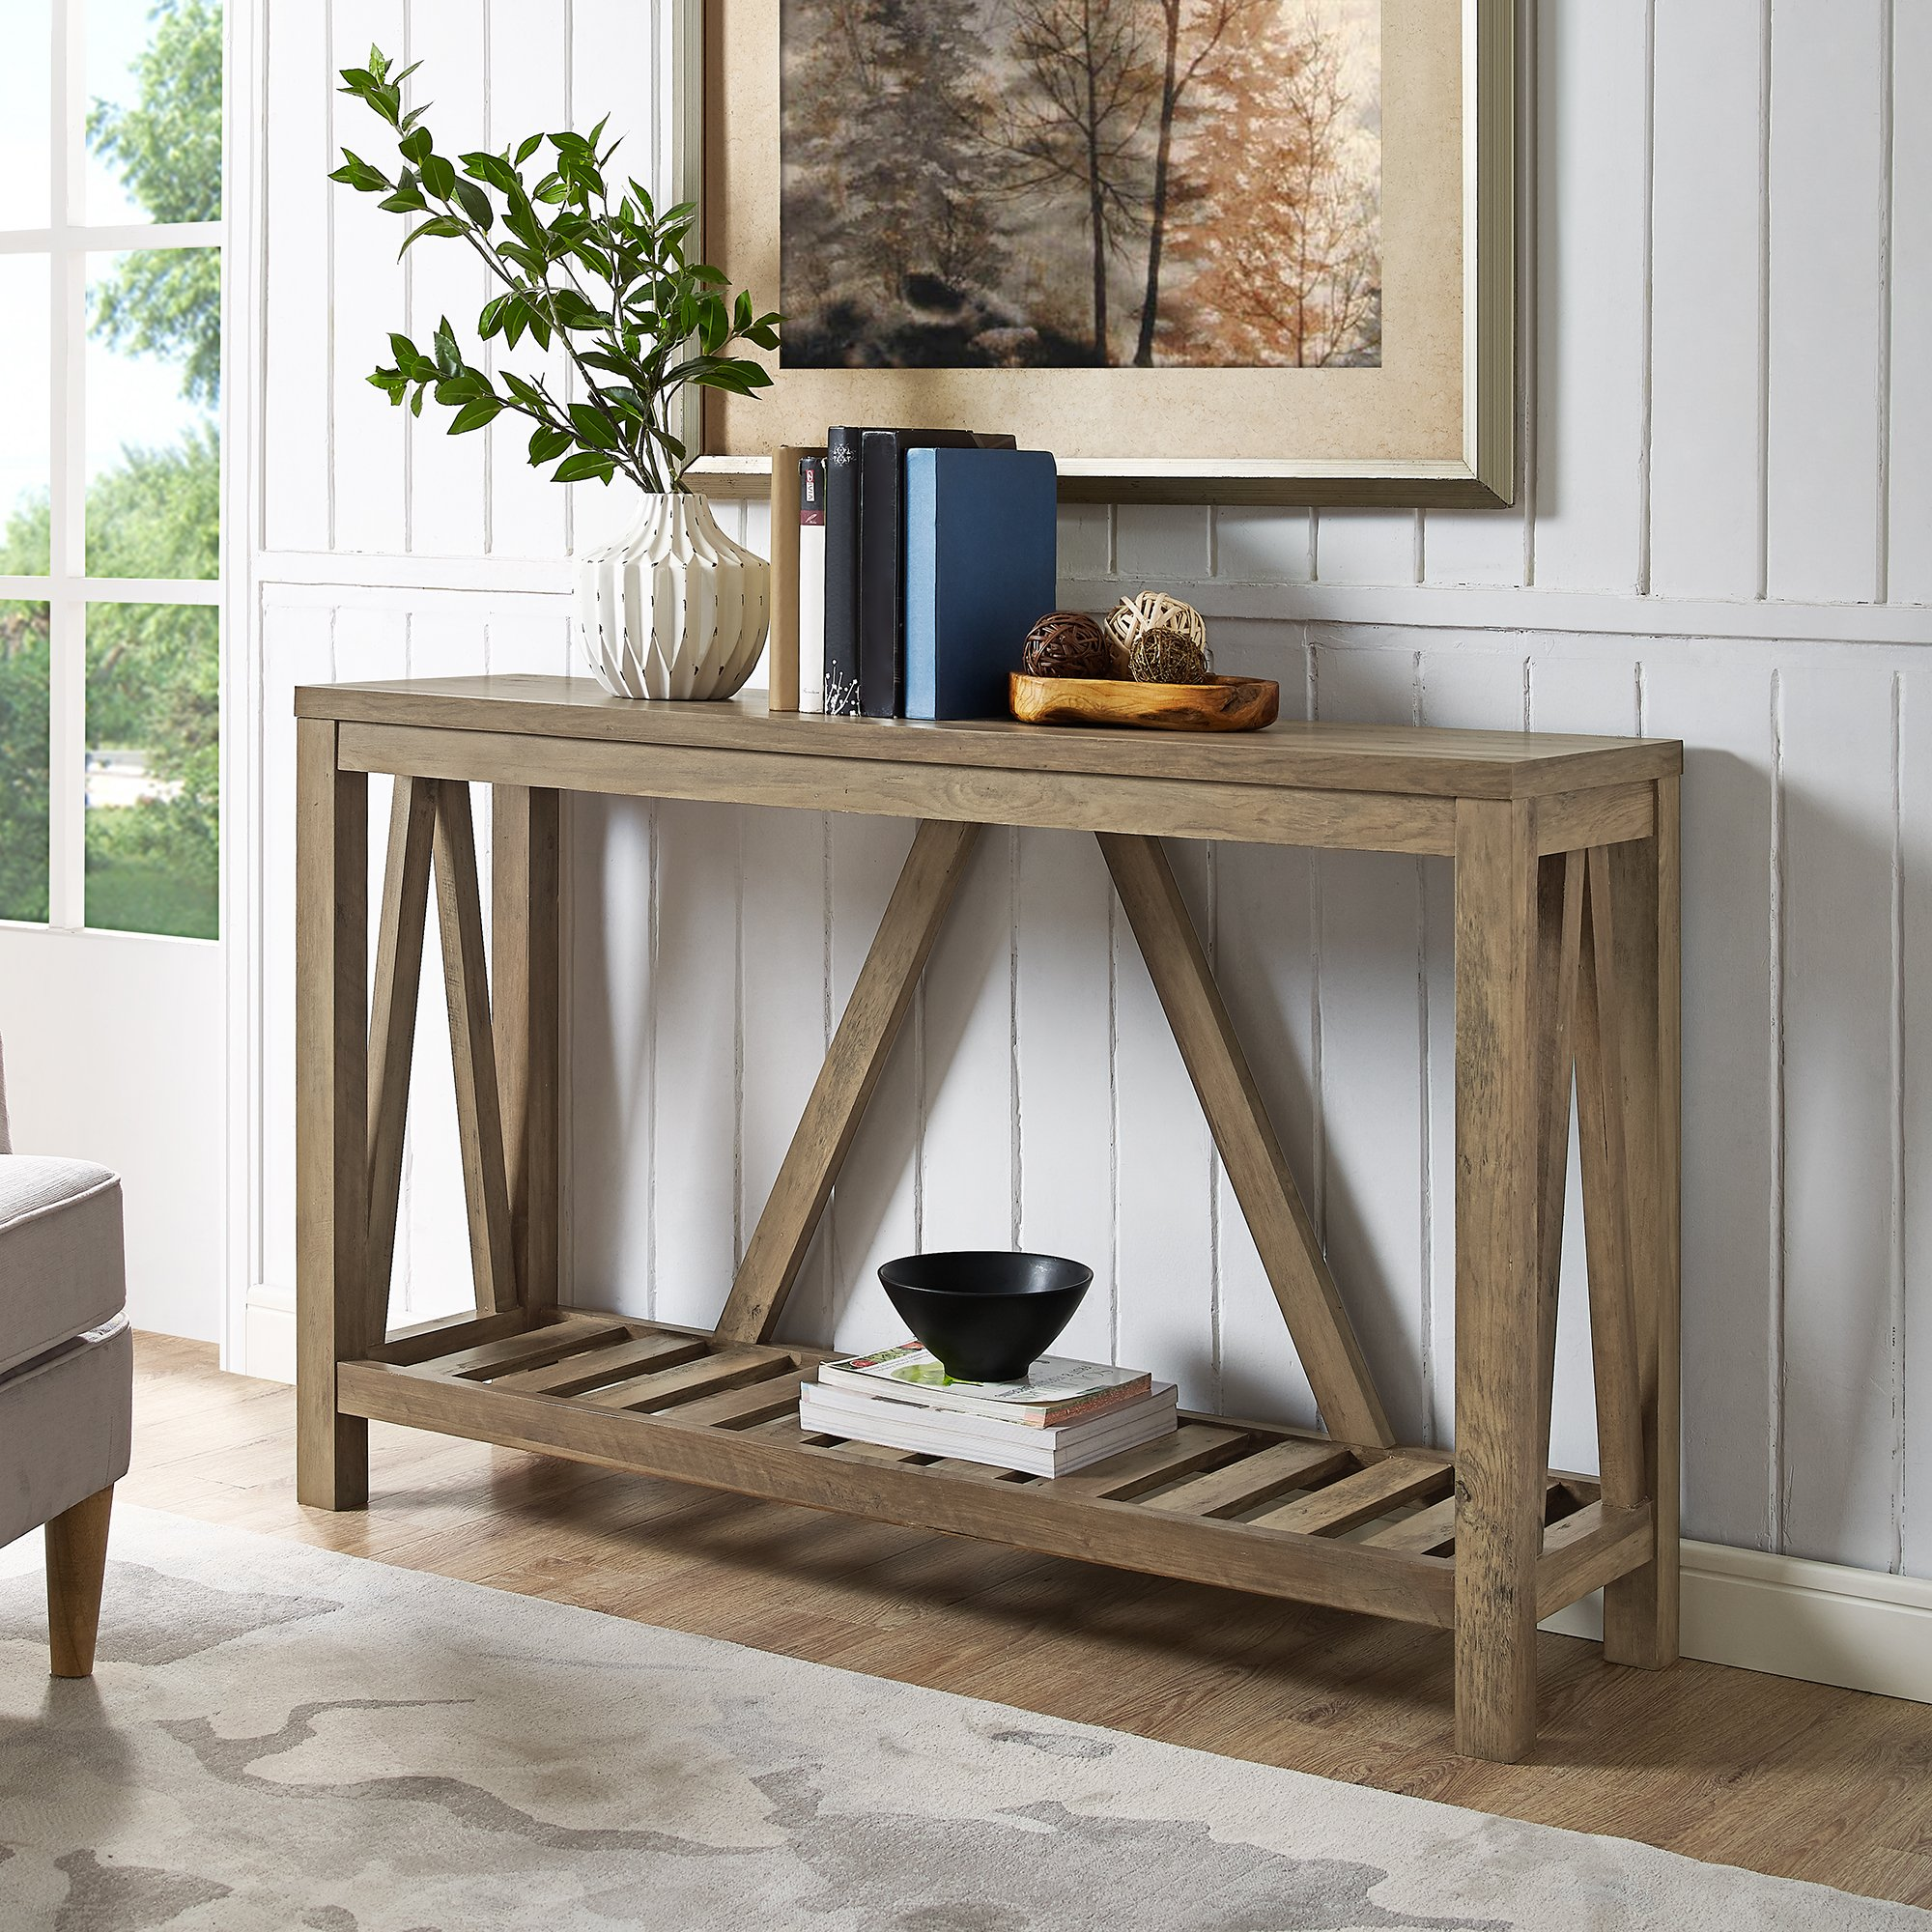 Home Accent Furnishings New 52 Inch Wide A-Frame Entry Table (52 Inch, Rustic Oak) by Home Accent Furnishings